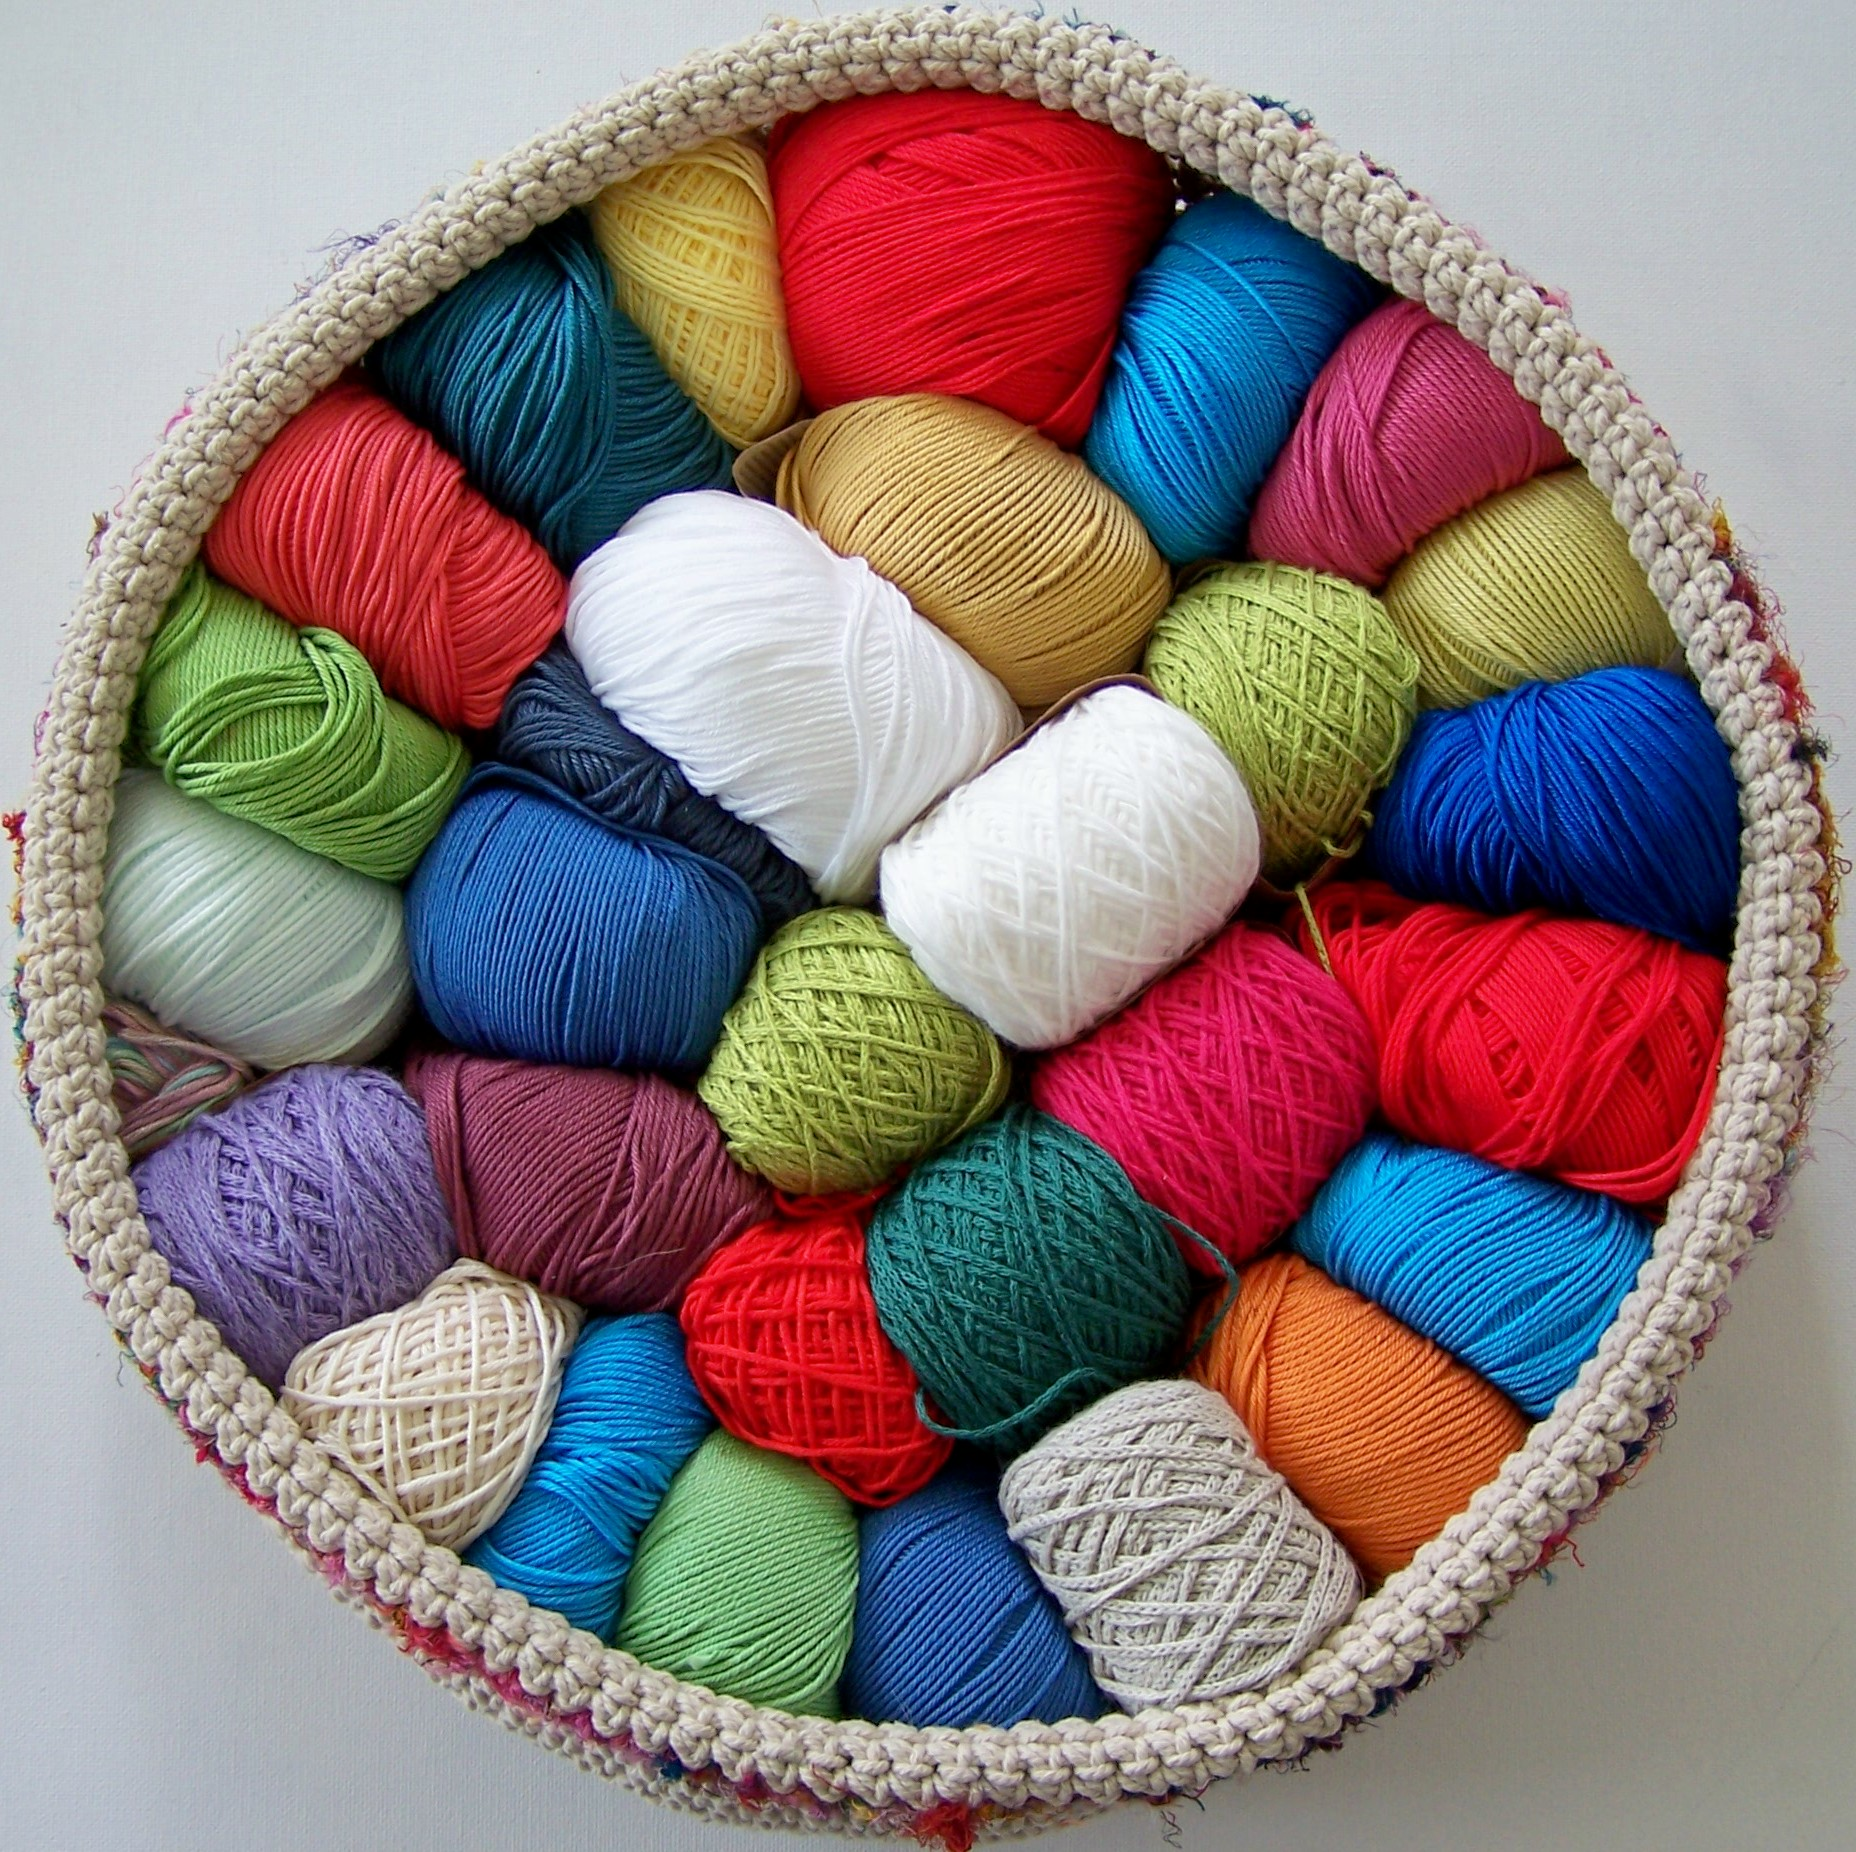 Crochet Patterns Loops And Thread Yarn : Yarn Basket ? Made With Loops